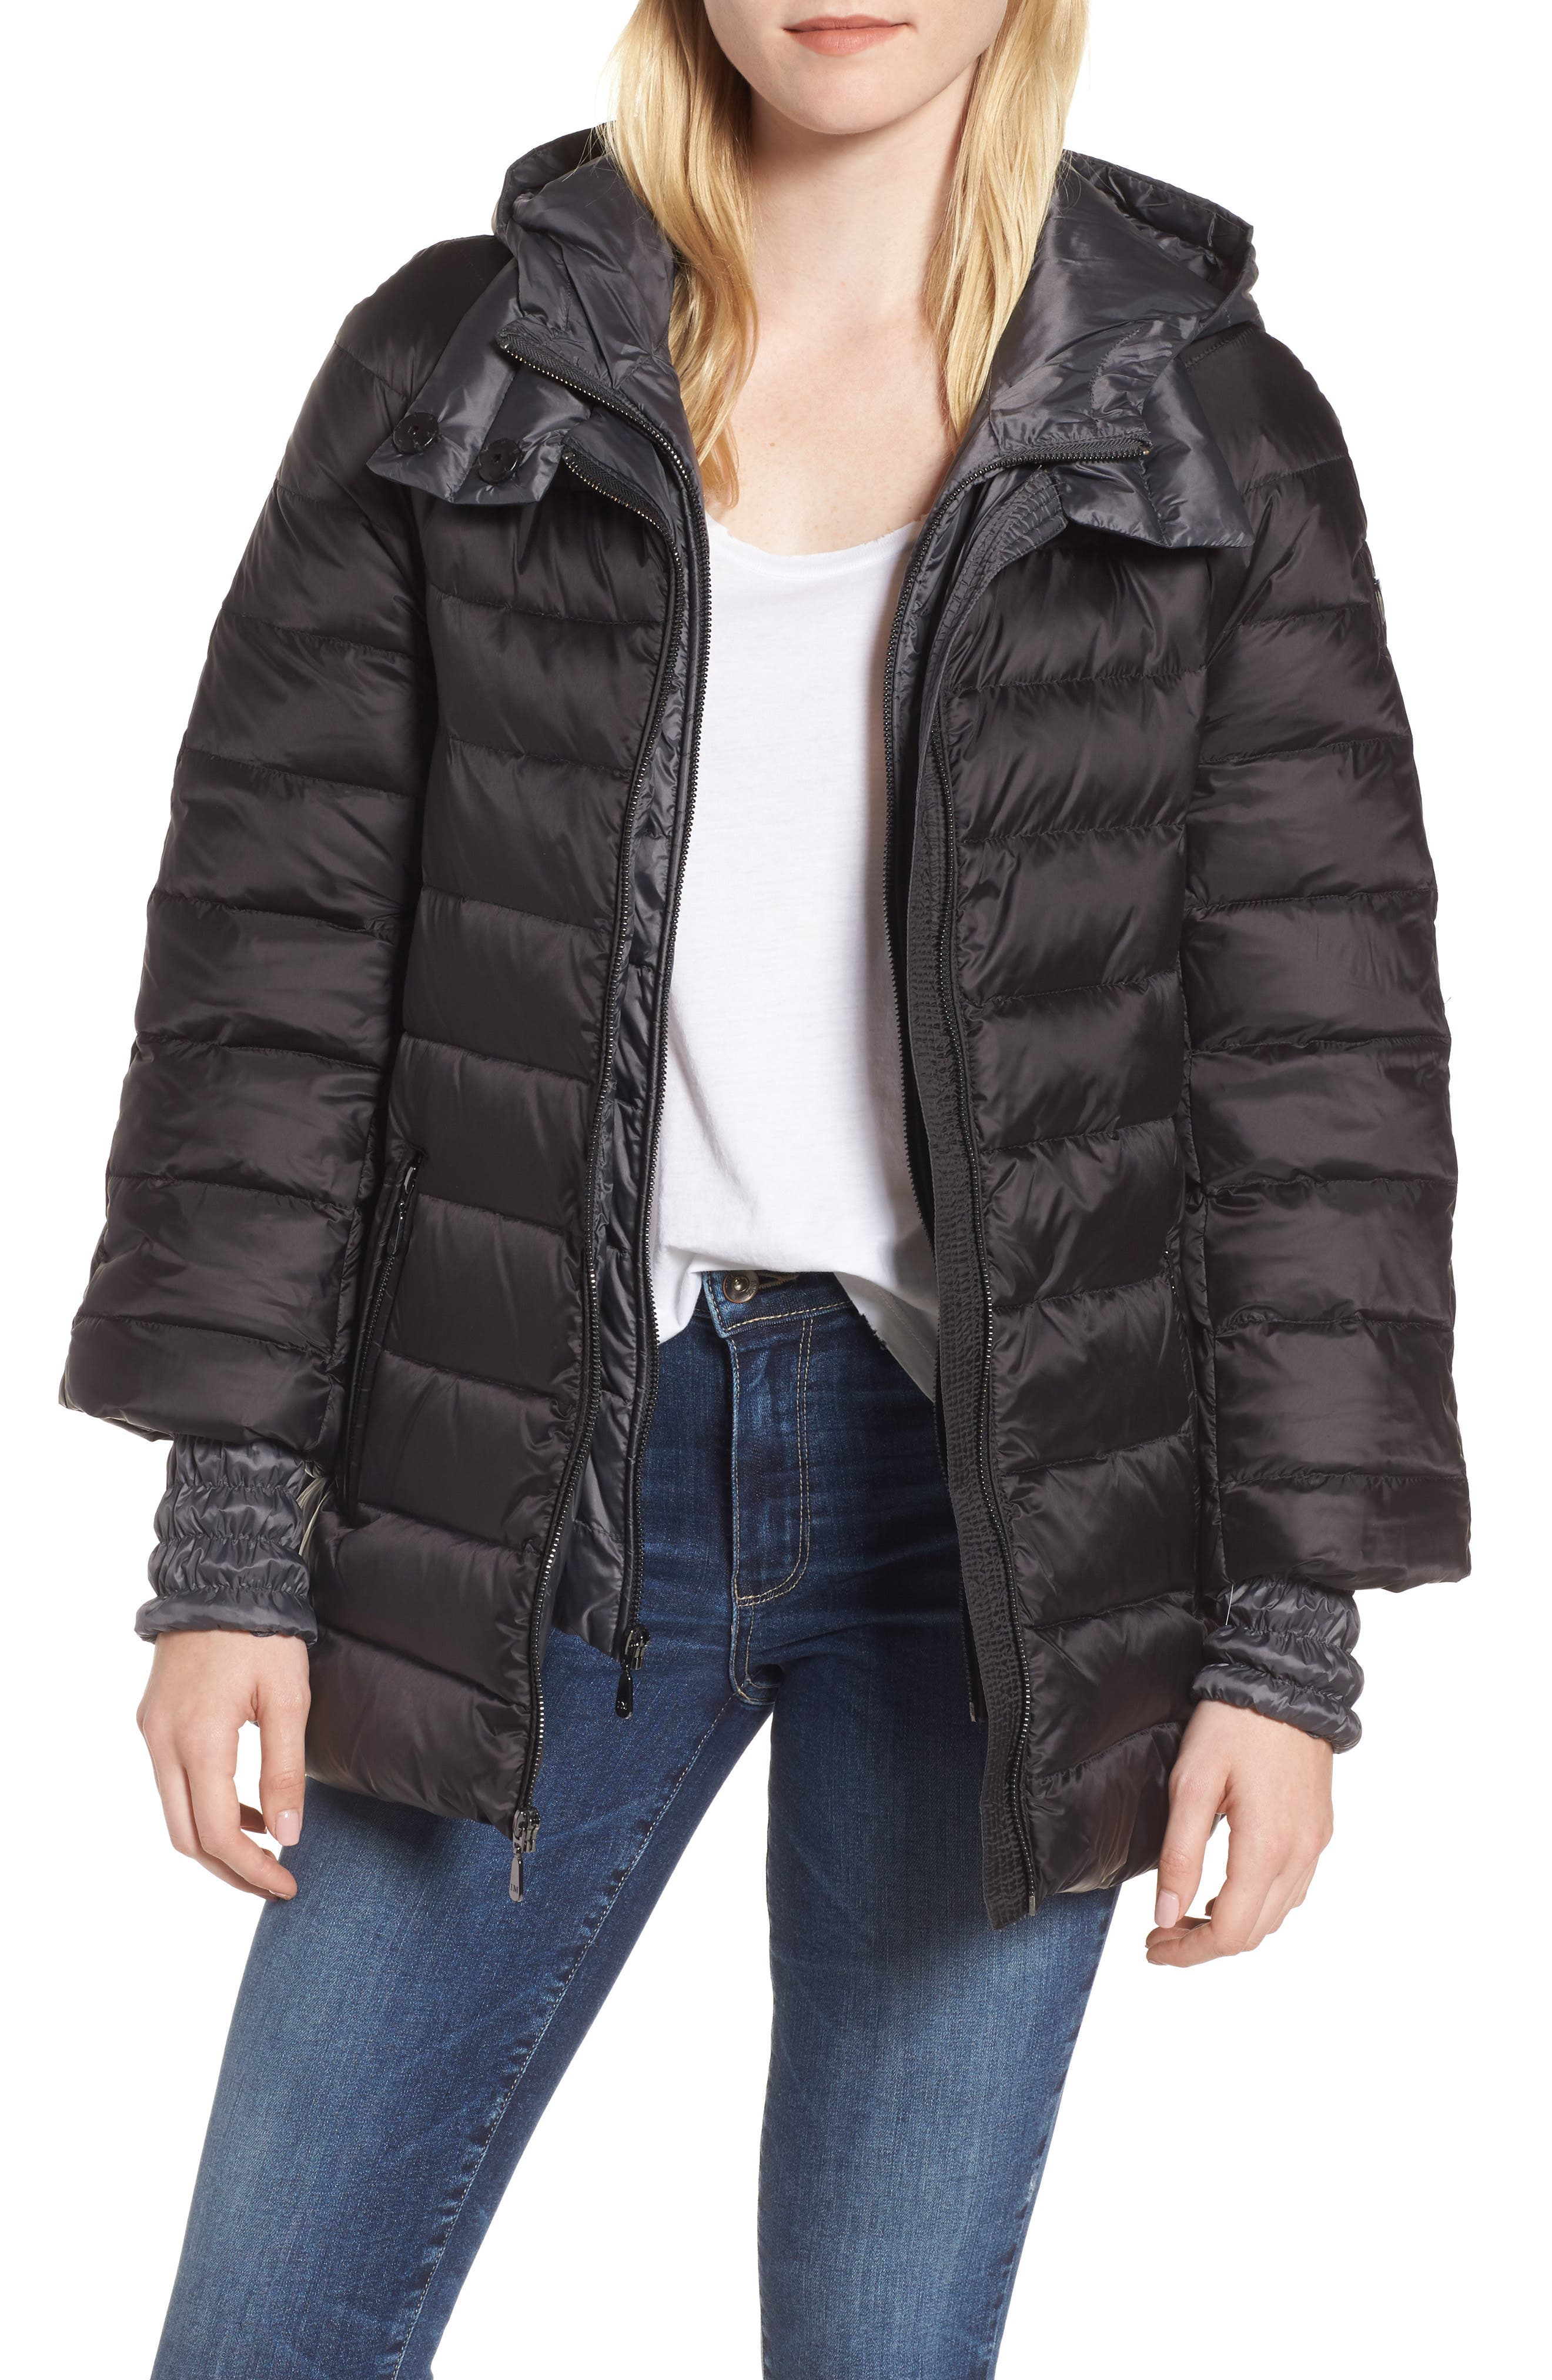 Main Image - 1 Madison 3-in-1 Layered Packable Quilted Down Coat